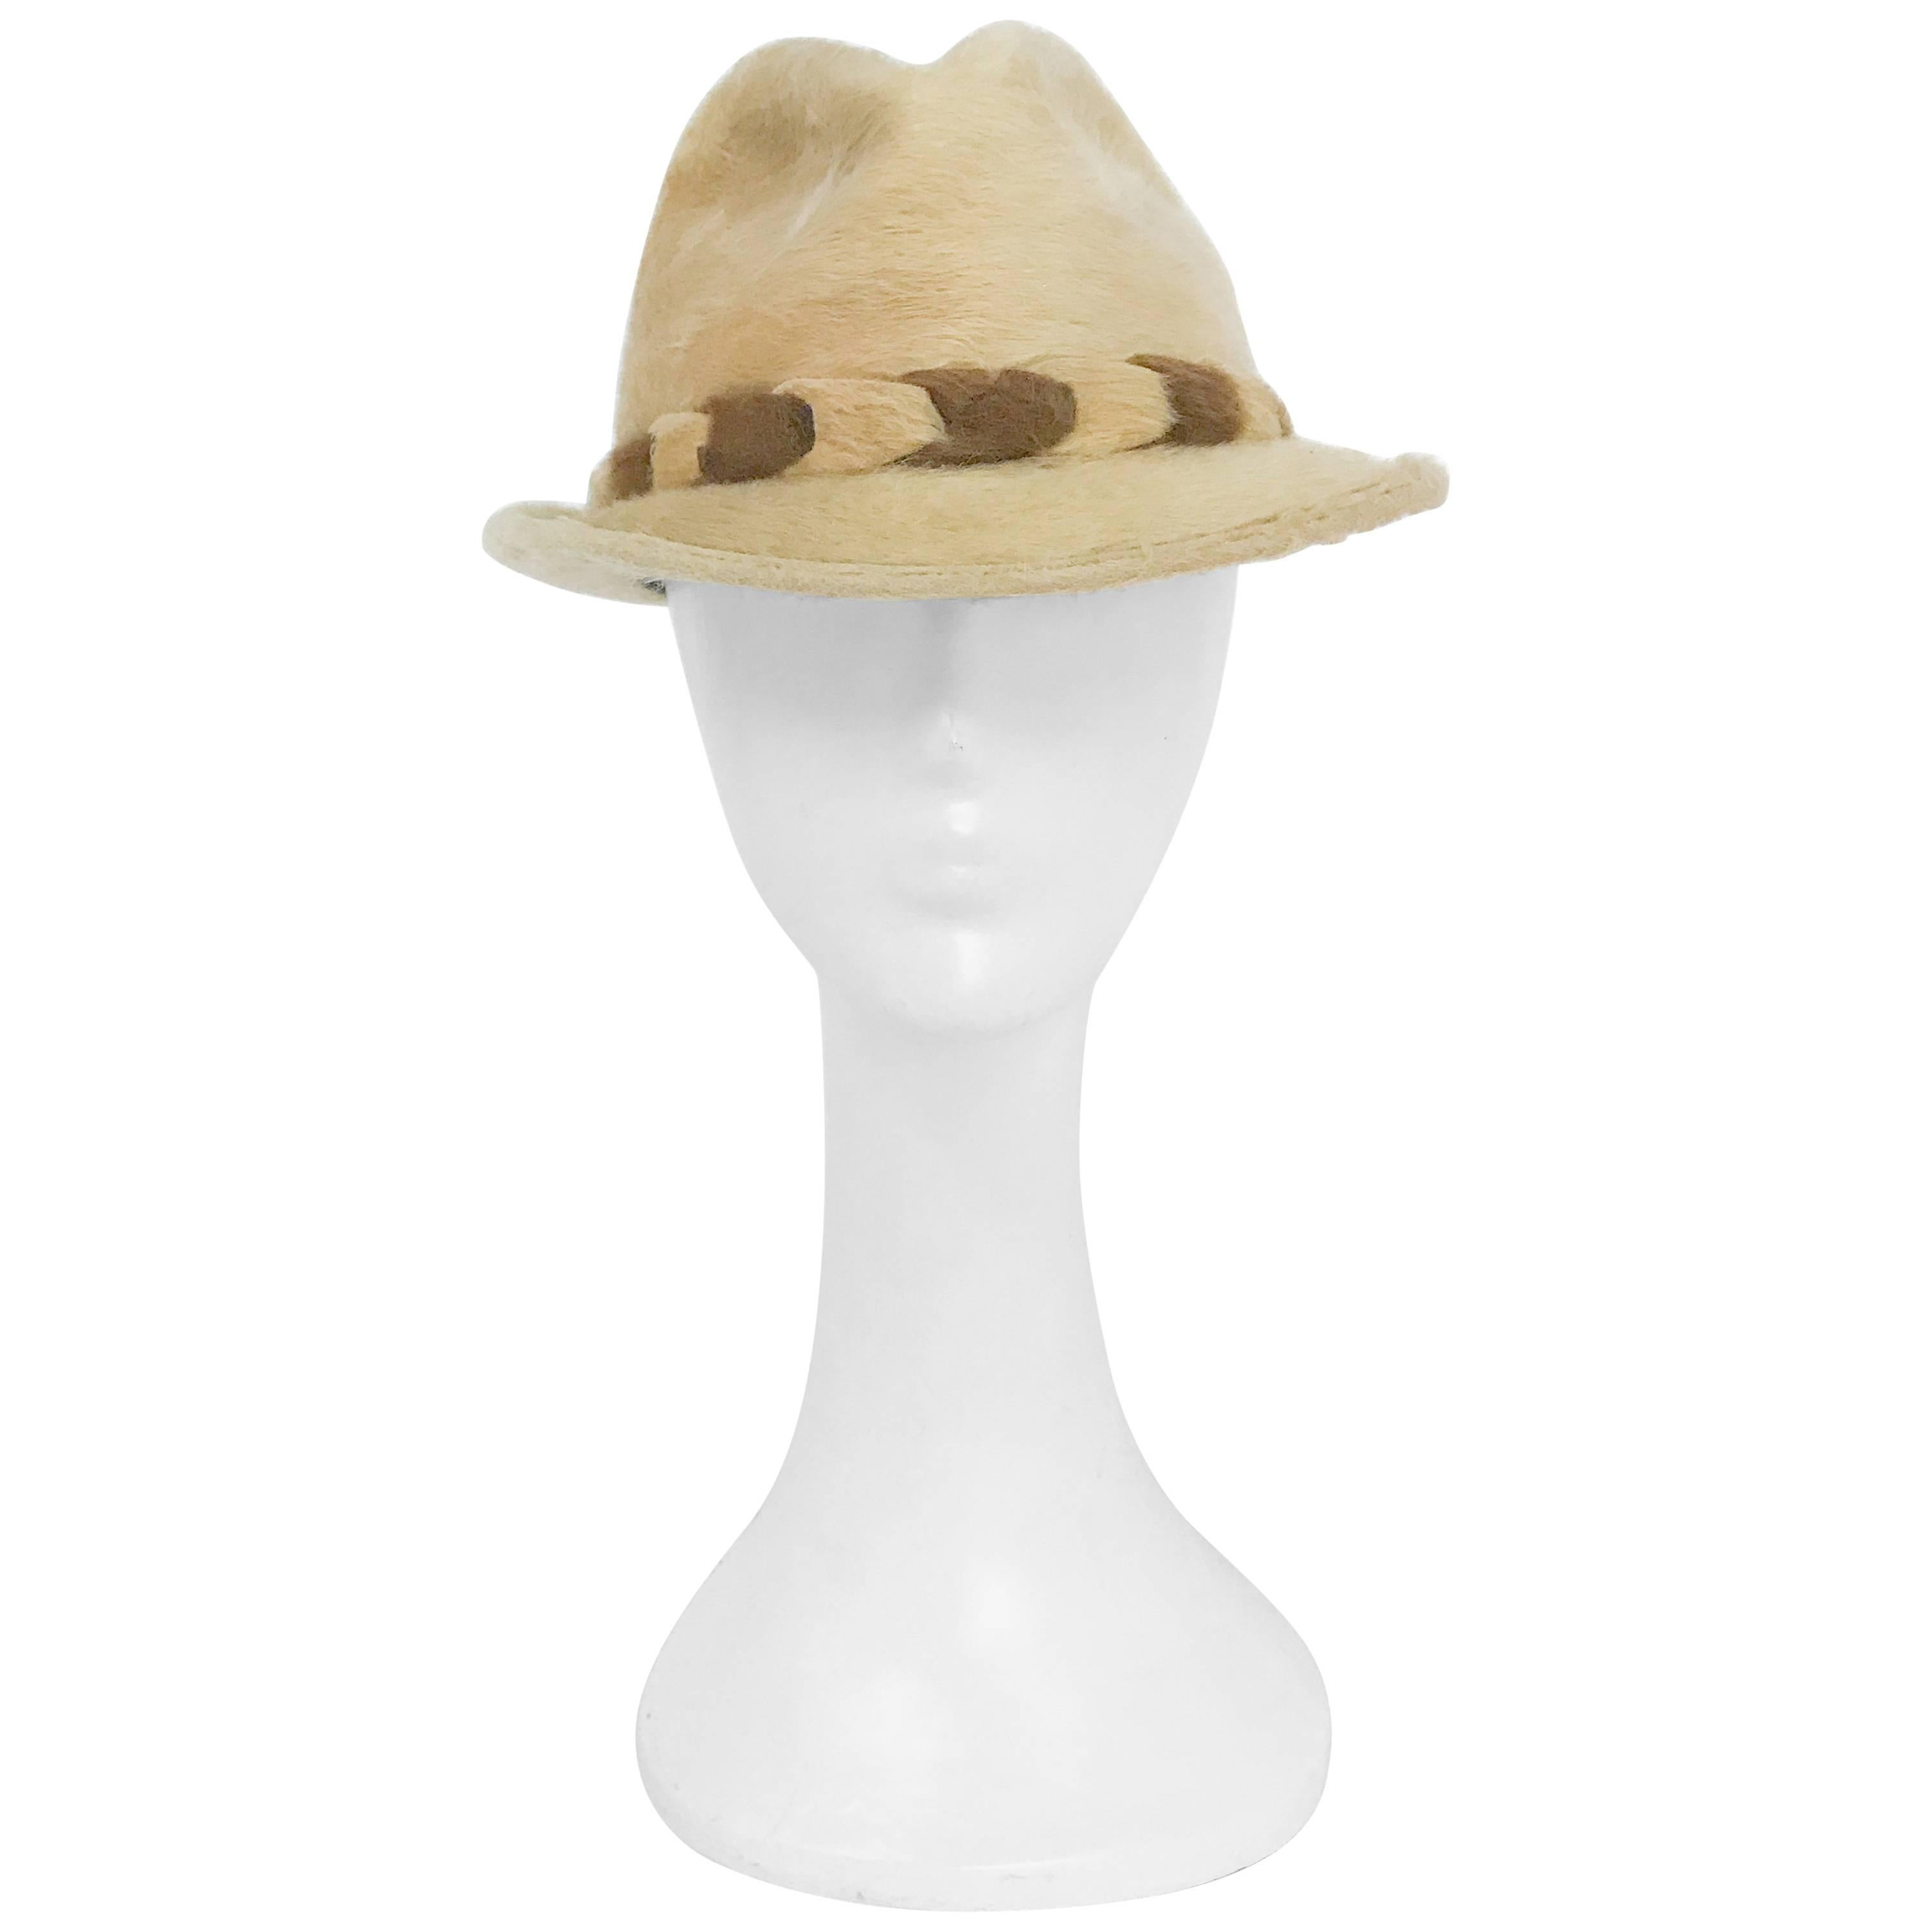 1960s Tan Beaver Felt hat with Two-Tone Band